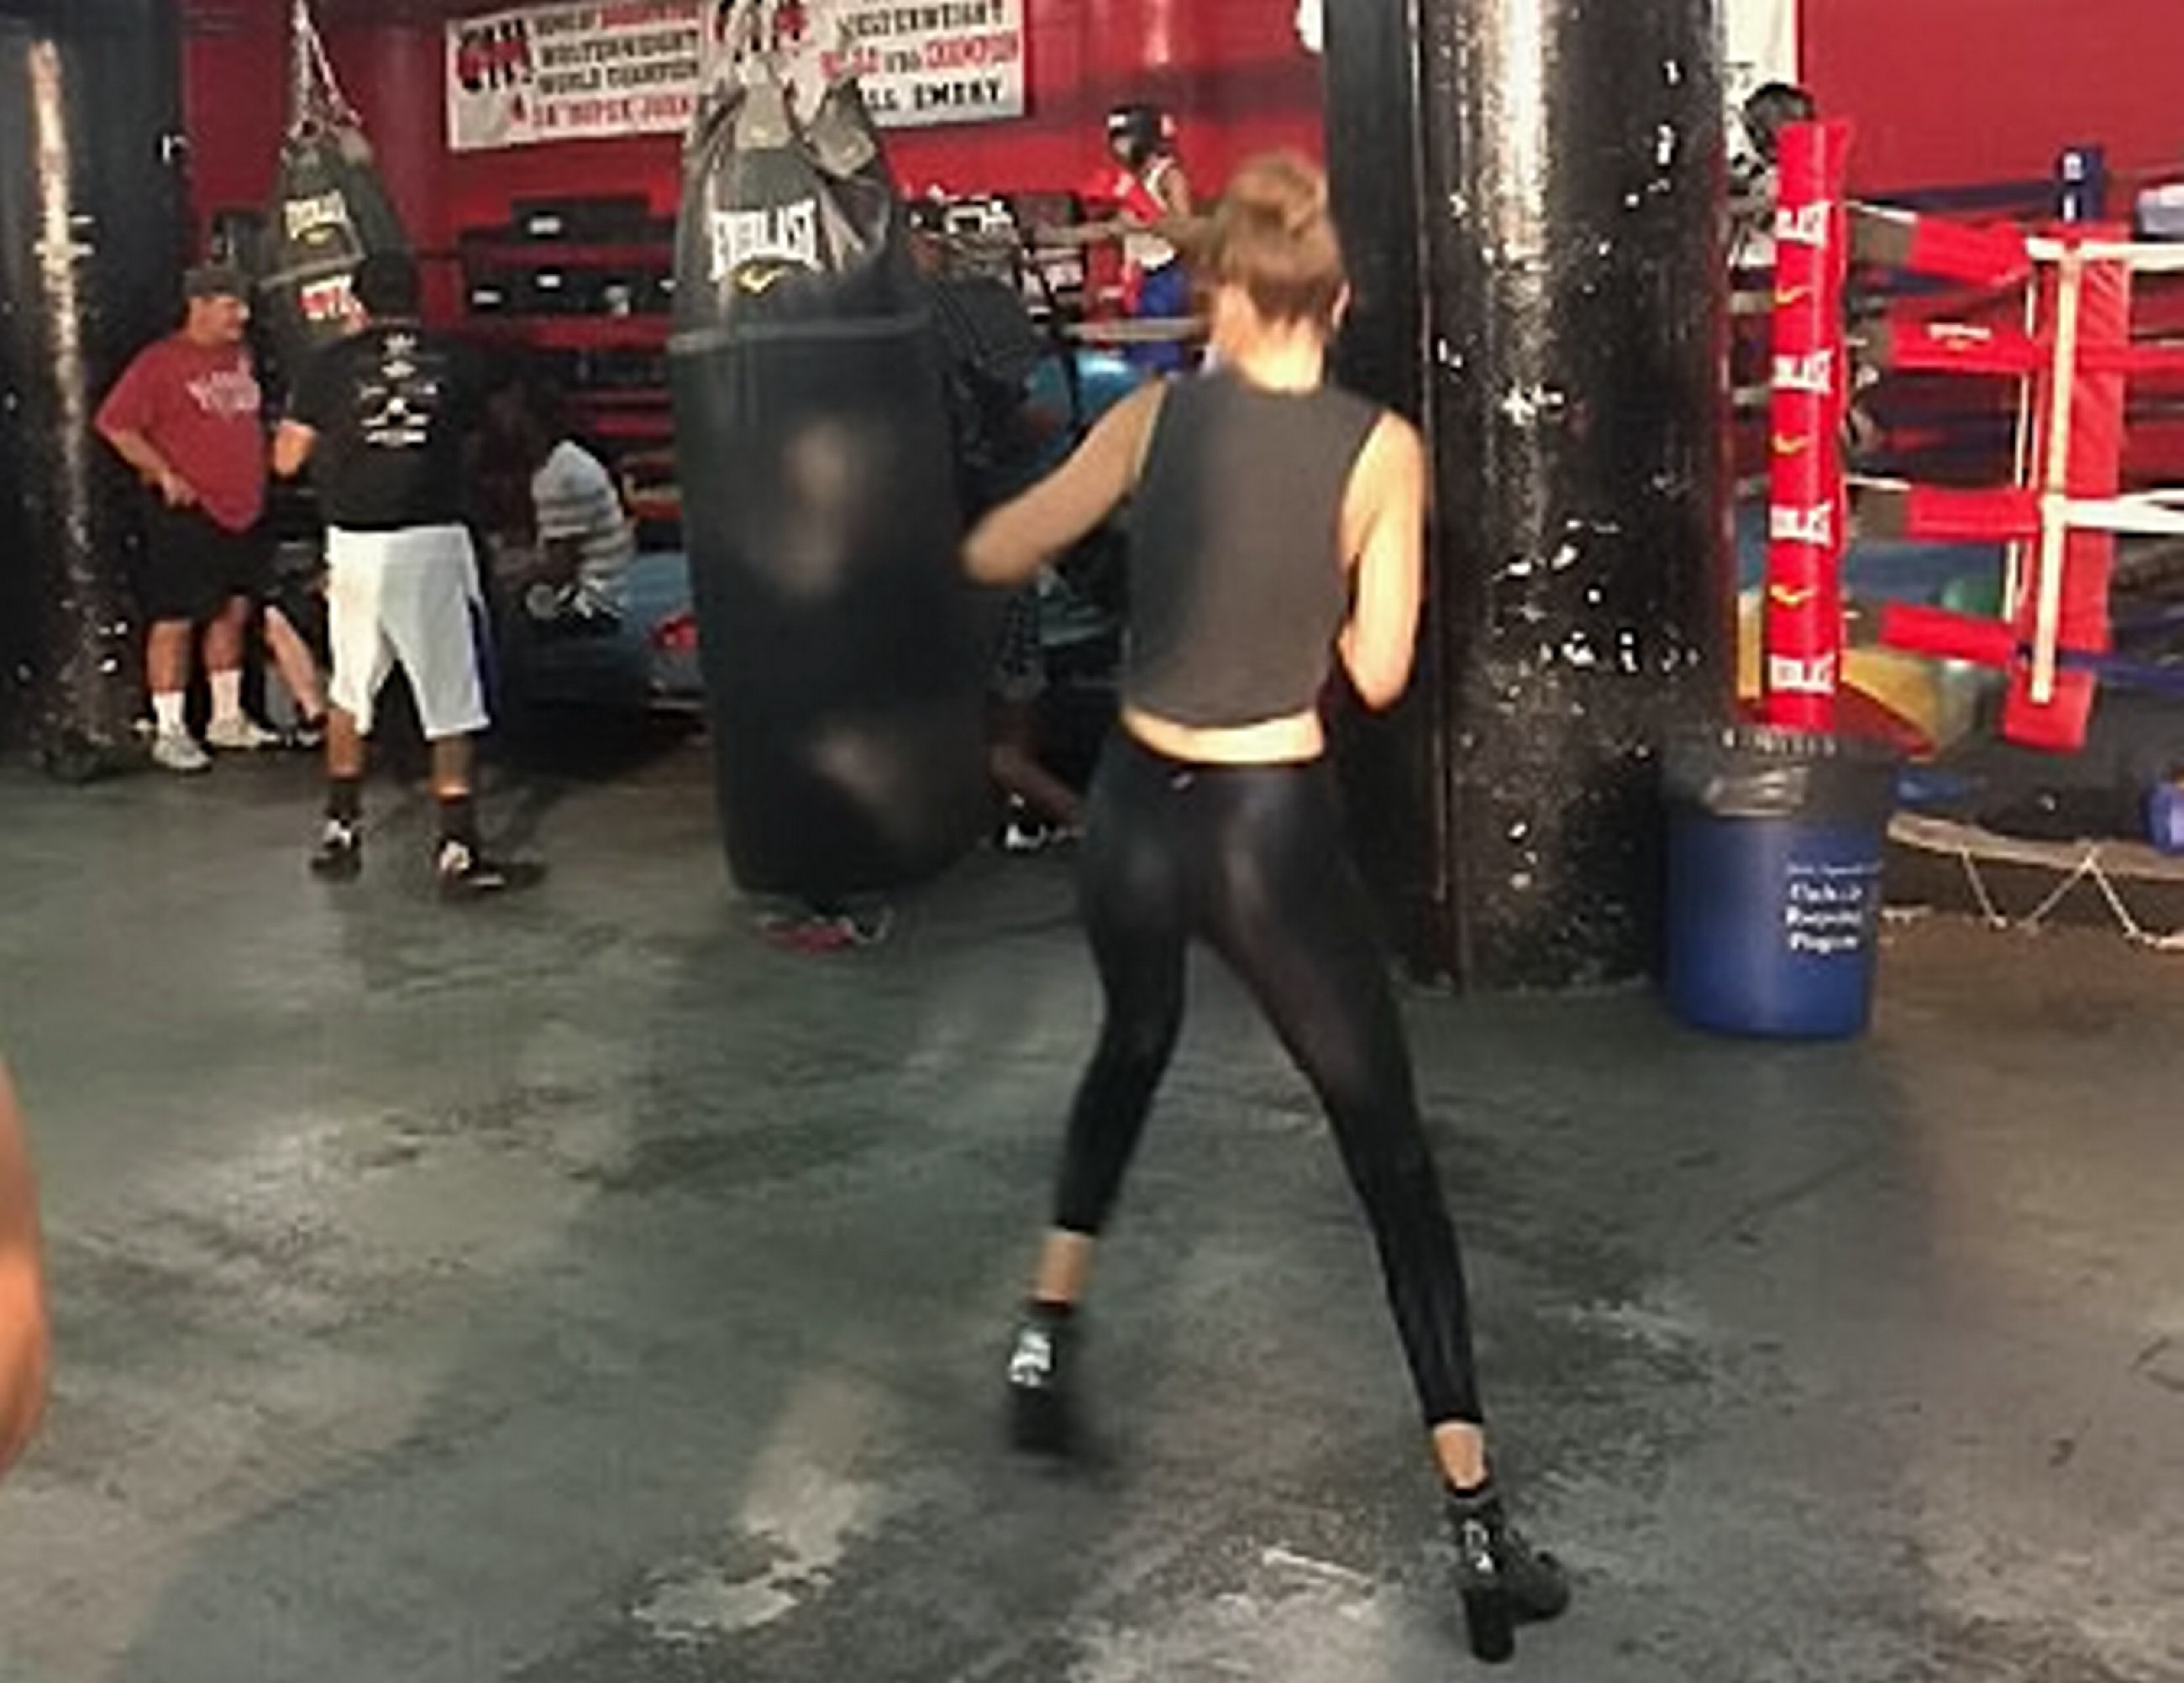 Gigi Hadid worked up a sweat boxing at a legendary New York